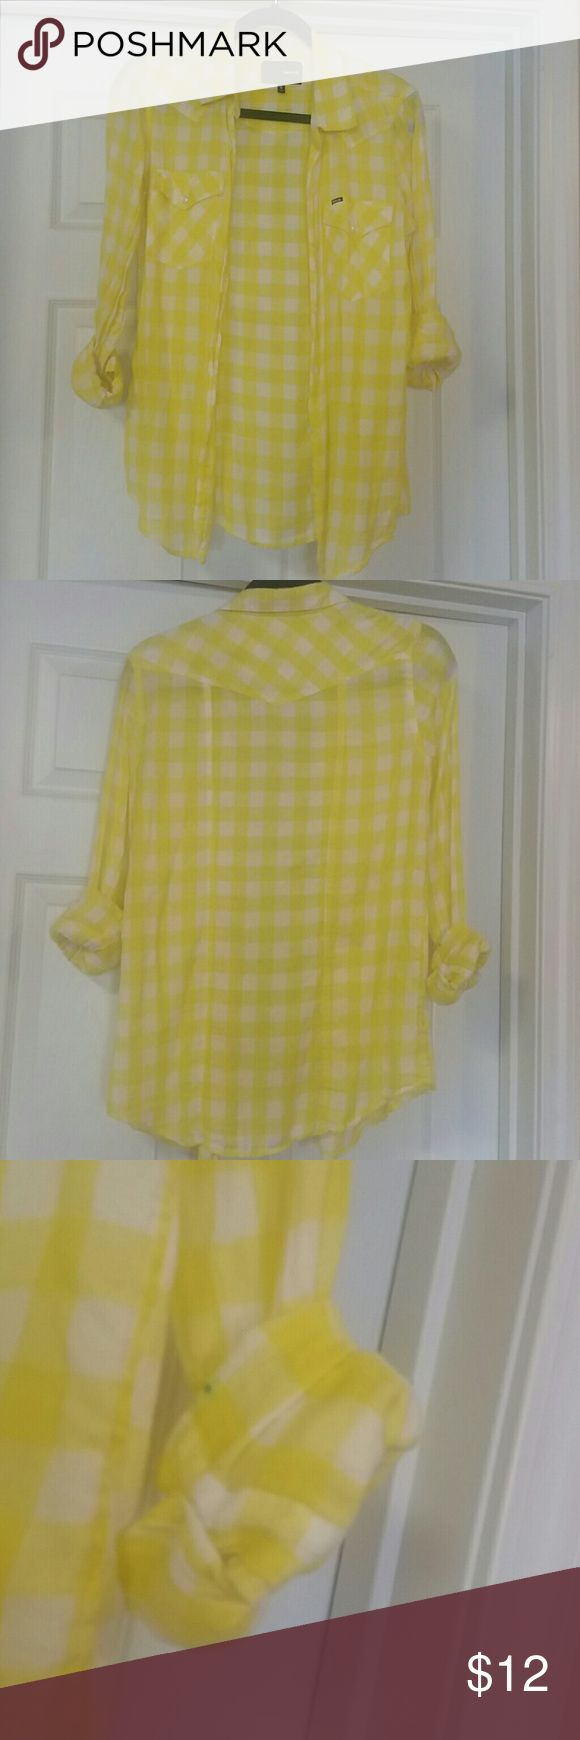 HURLEY FLANNEL style Hurley lightweight flannel style bottom down. Lightly worn AMD loved! Perfect for Spring /Summer top...yellow is brighter in person. Small blue dot on rolled up sleeve, and one on upper back. Priced to sell   Thanks for looking, liking and sharing. :) Hurley Tops Button Down Shirts